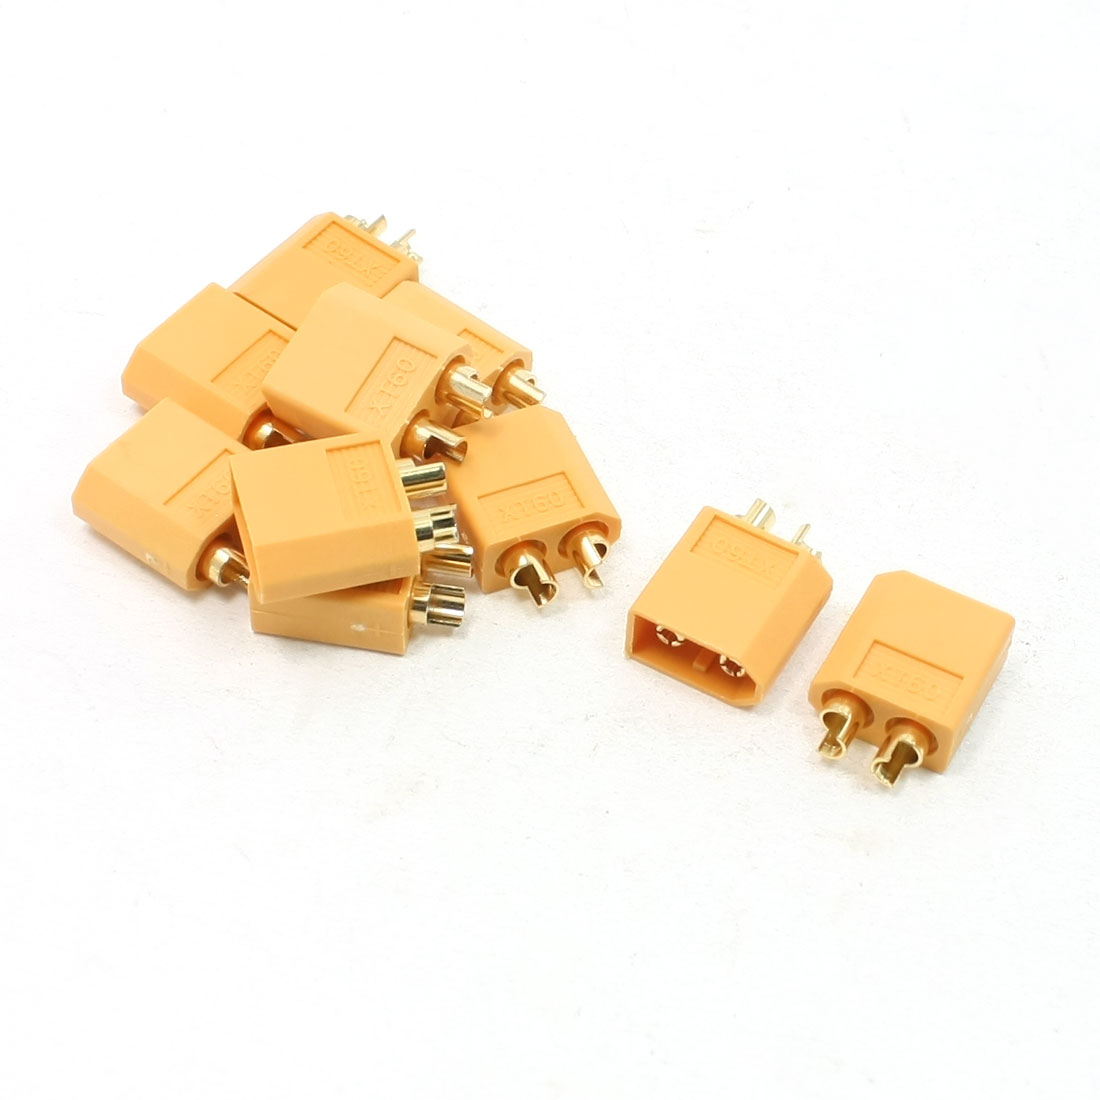 10 Pcs RC Model Toys S714 XT60 Type Battery Female Connector